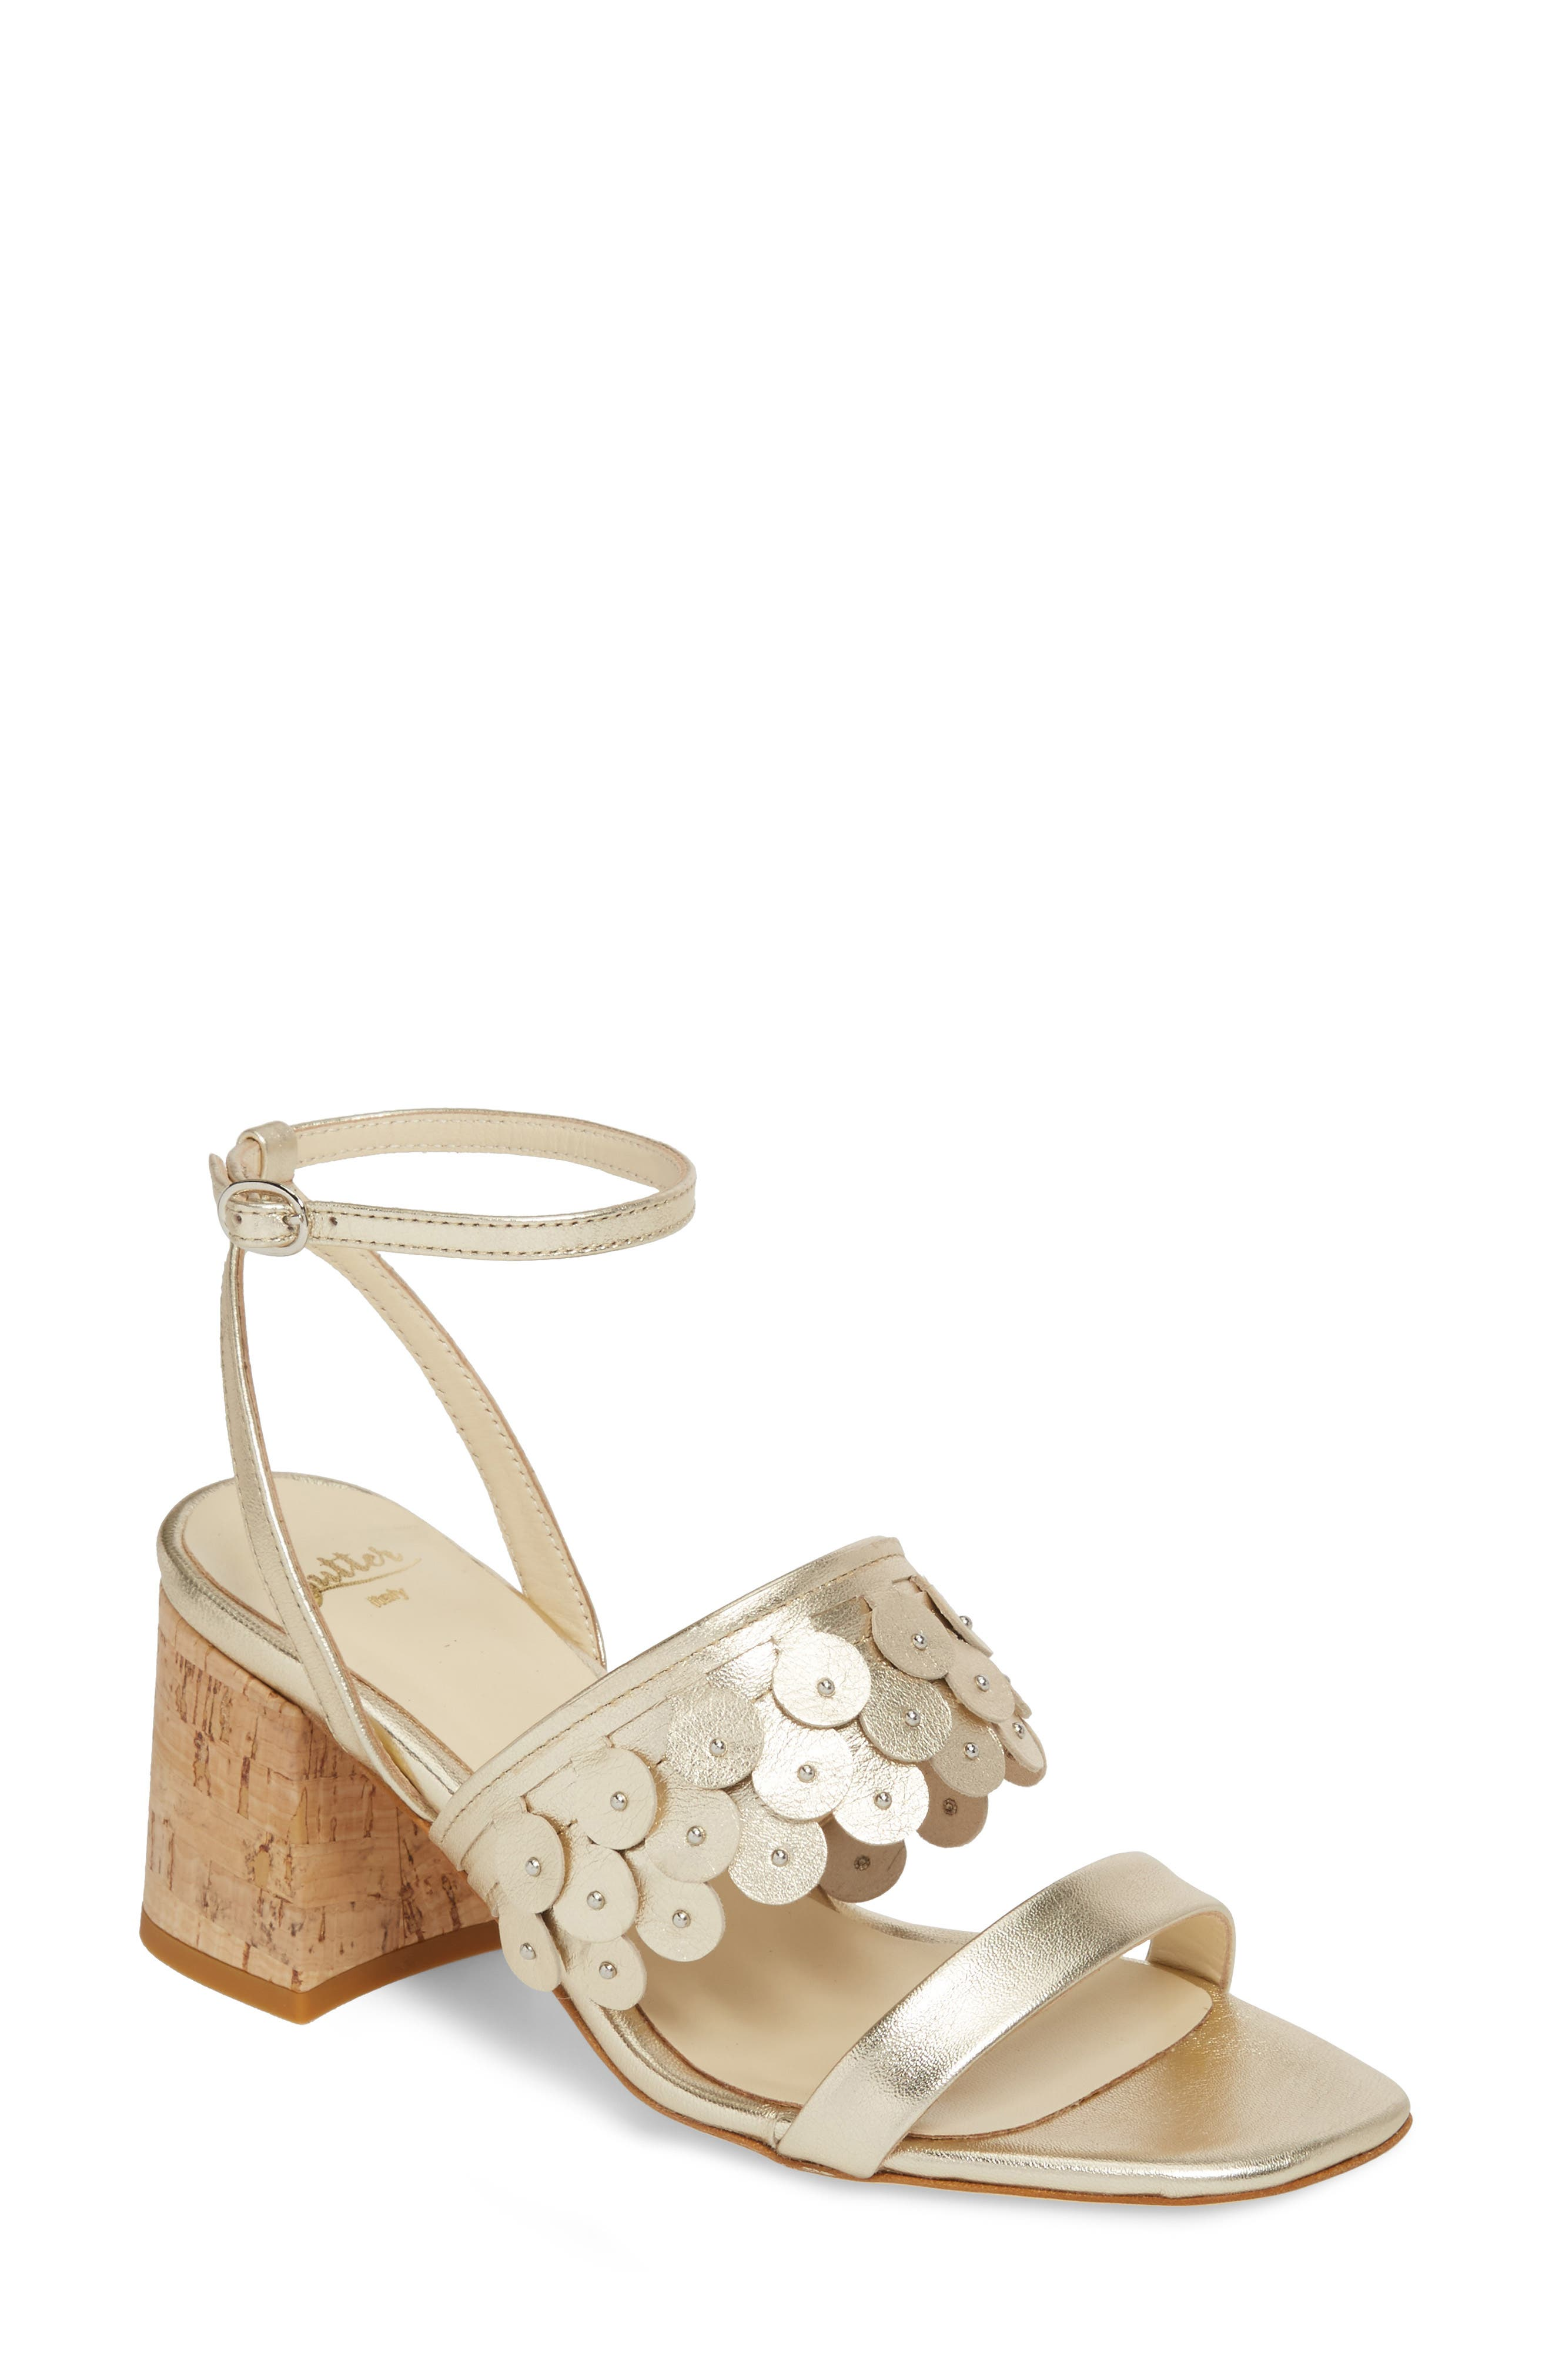 Butter Finley Studded Ankle Strap Sandal,                         Main,                         color, Platino Napa